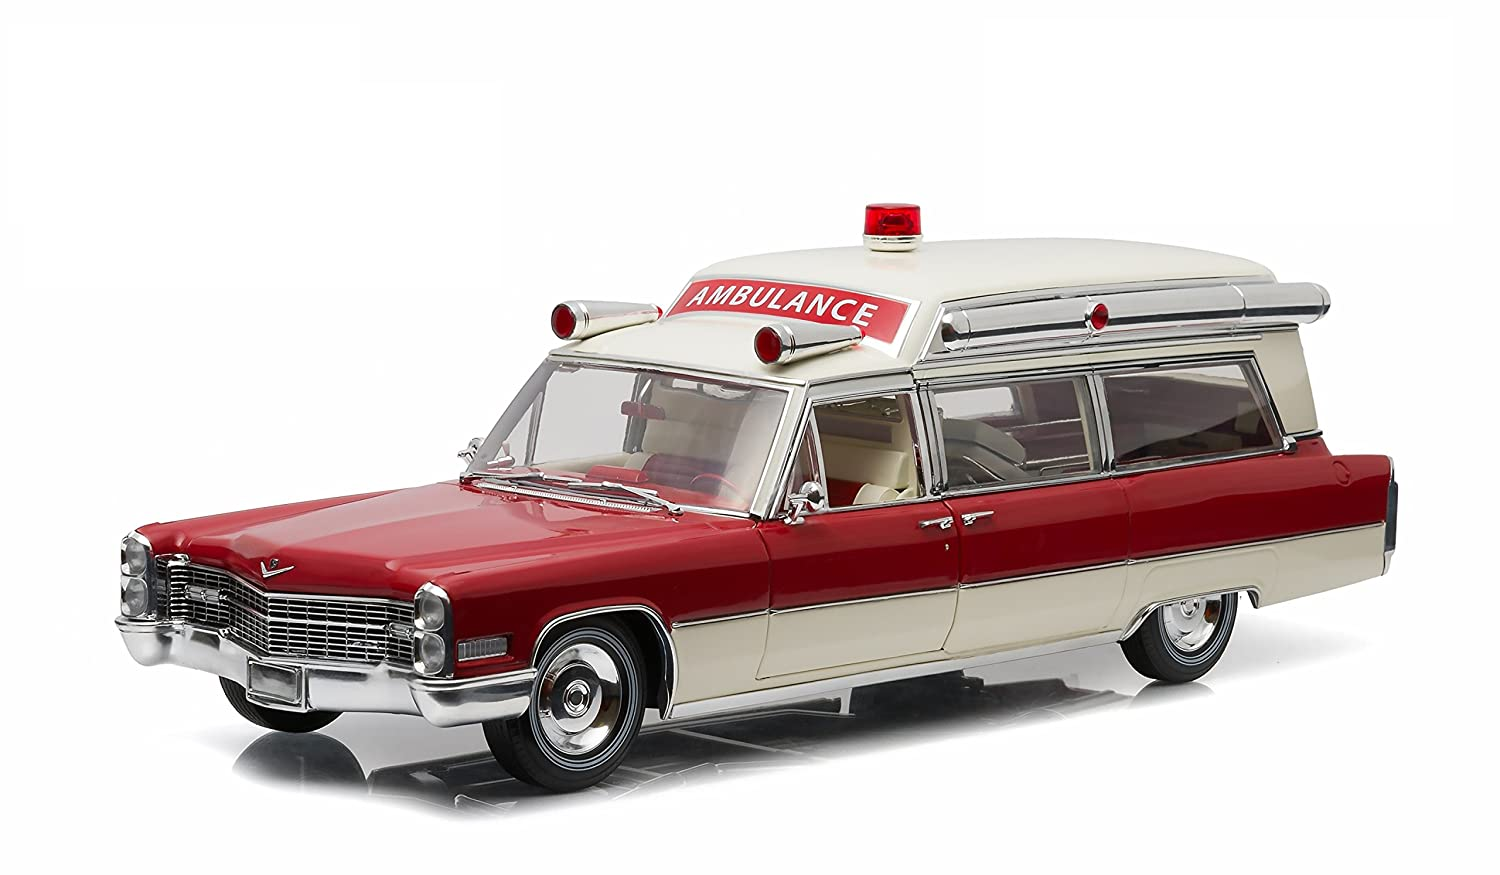 Greenlight 1966 Cadillac SS 48 High Top Ambulance Red and White Precision Collection Limited Edition 1/18 Diecast Model Car